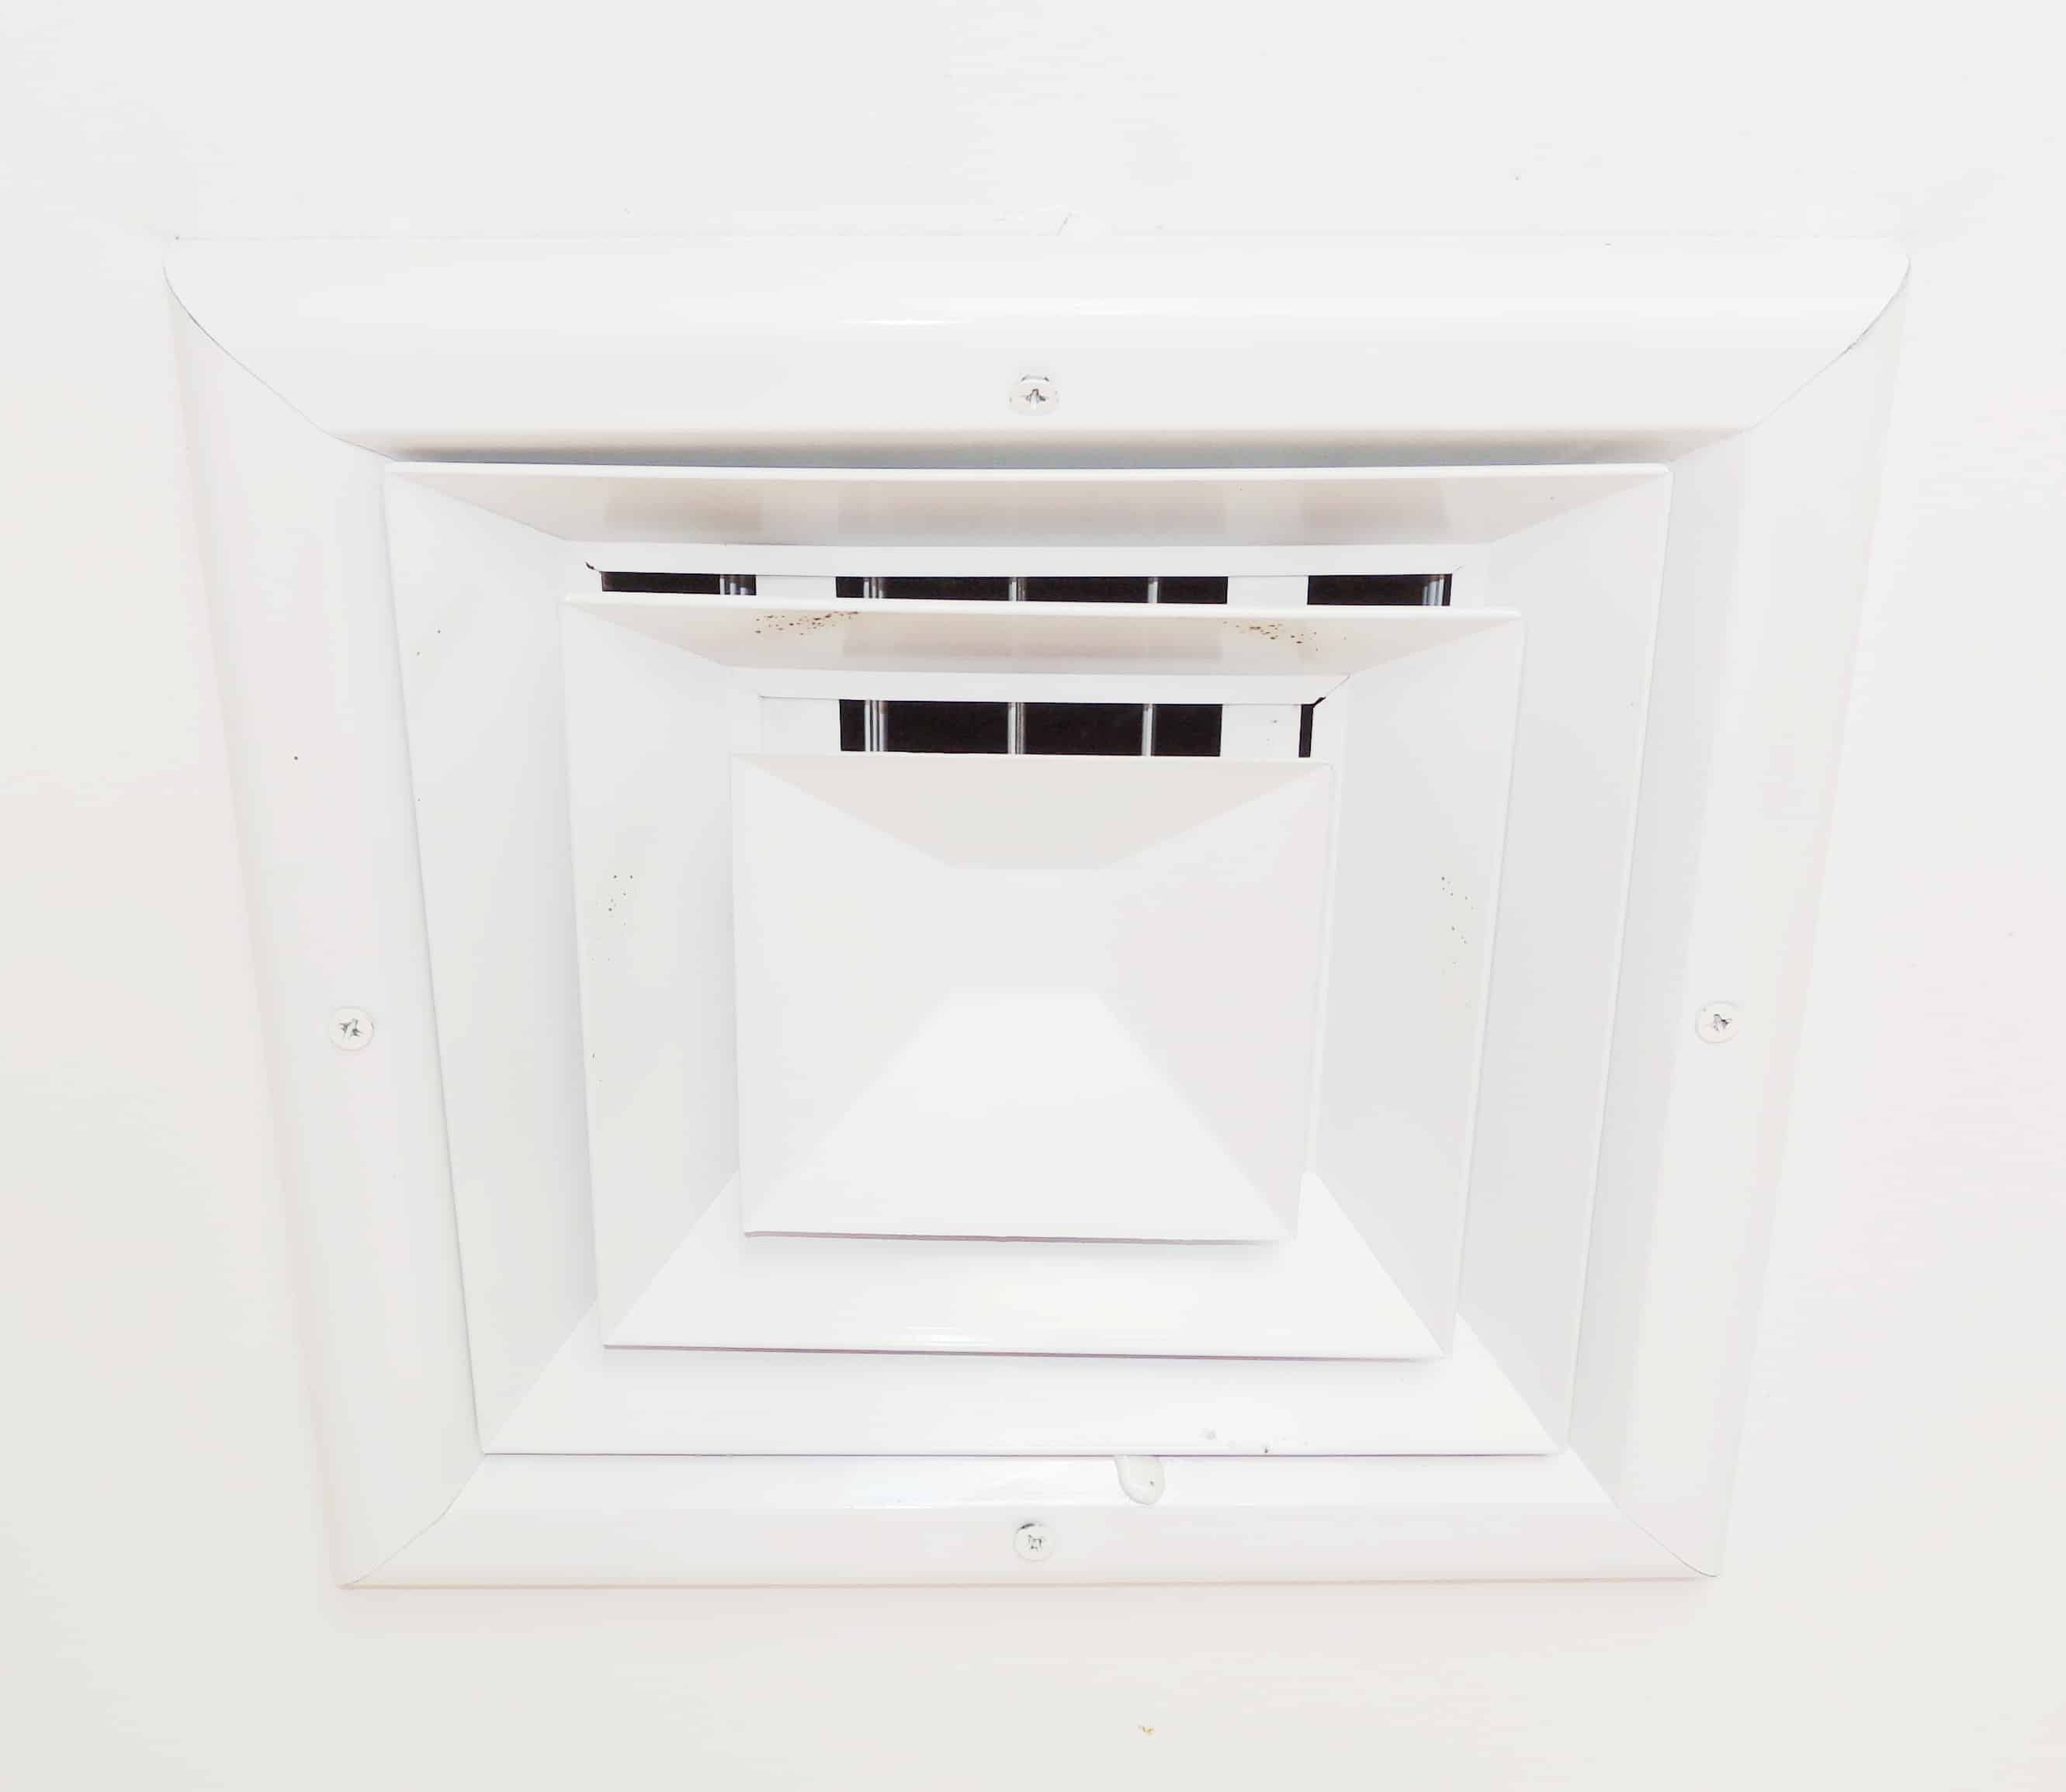 Ducted Air Conditioner Air Supply Diffusers